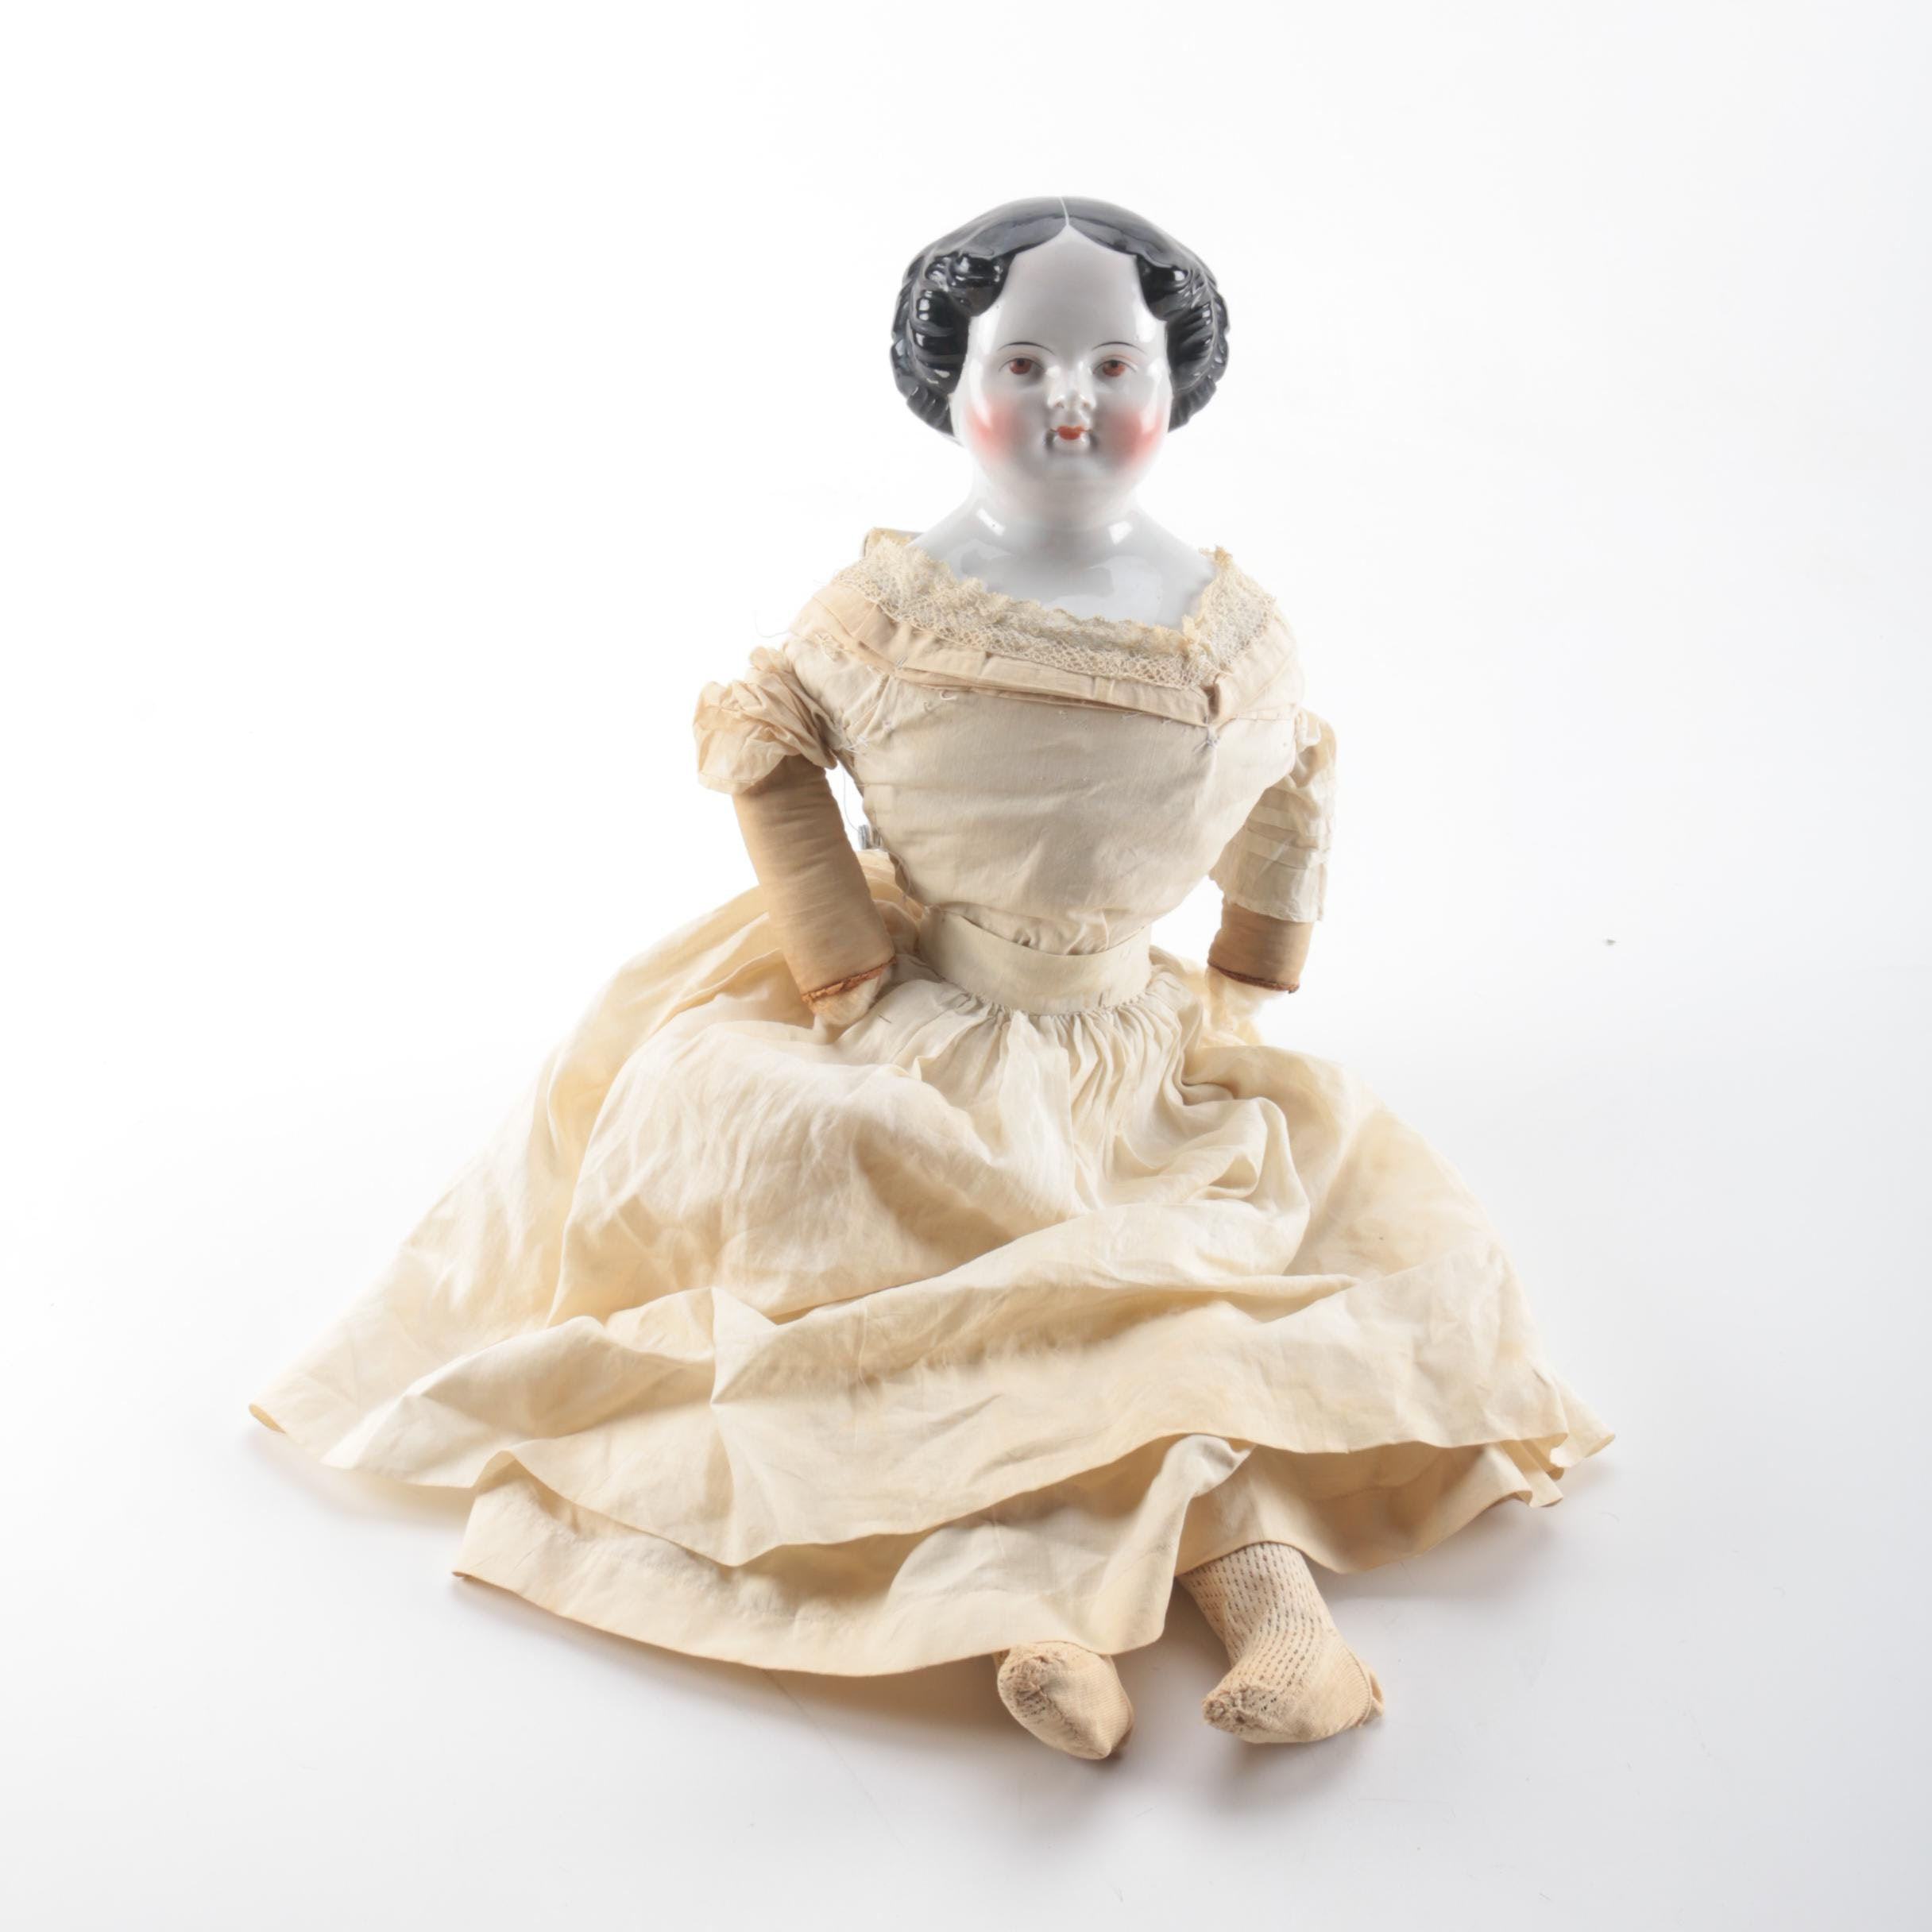 19th-Century China Doll